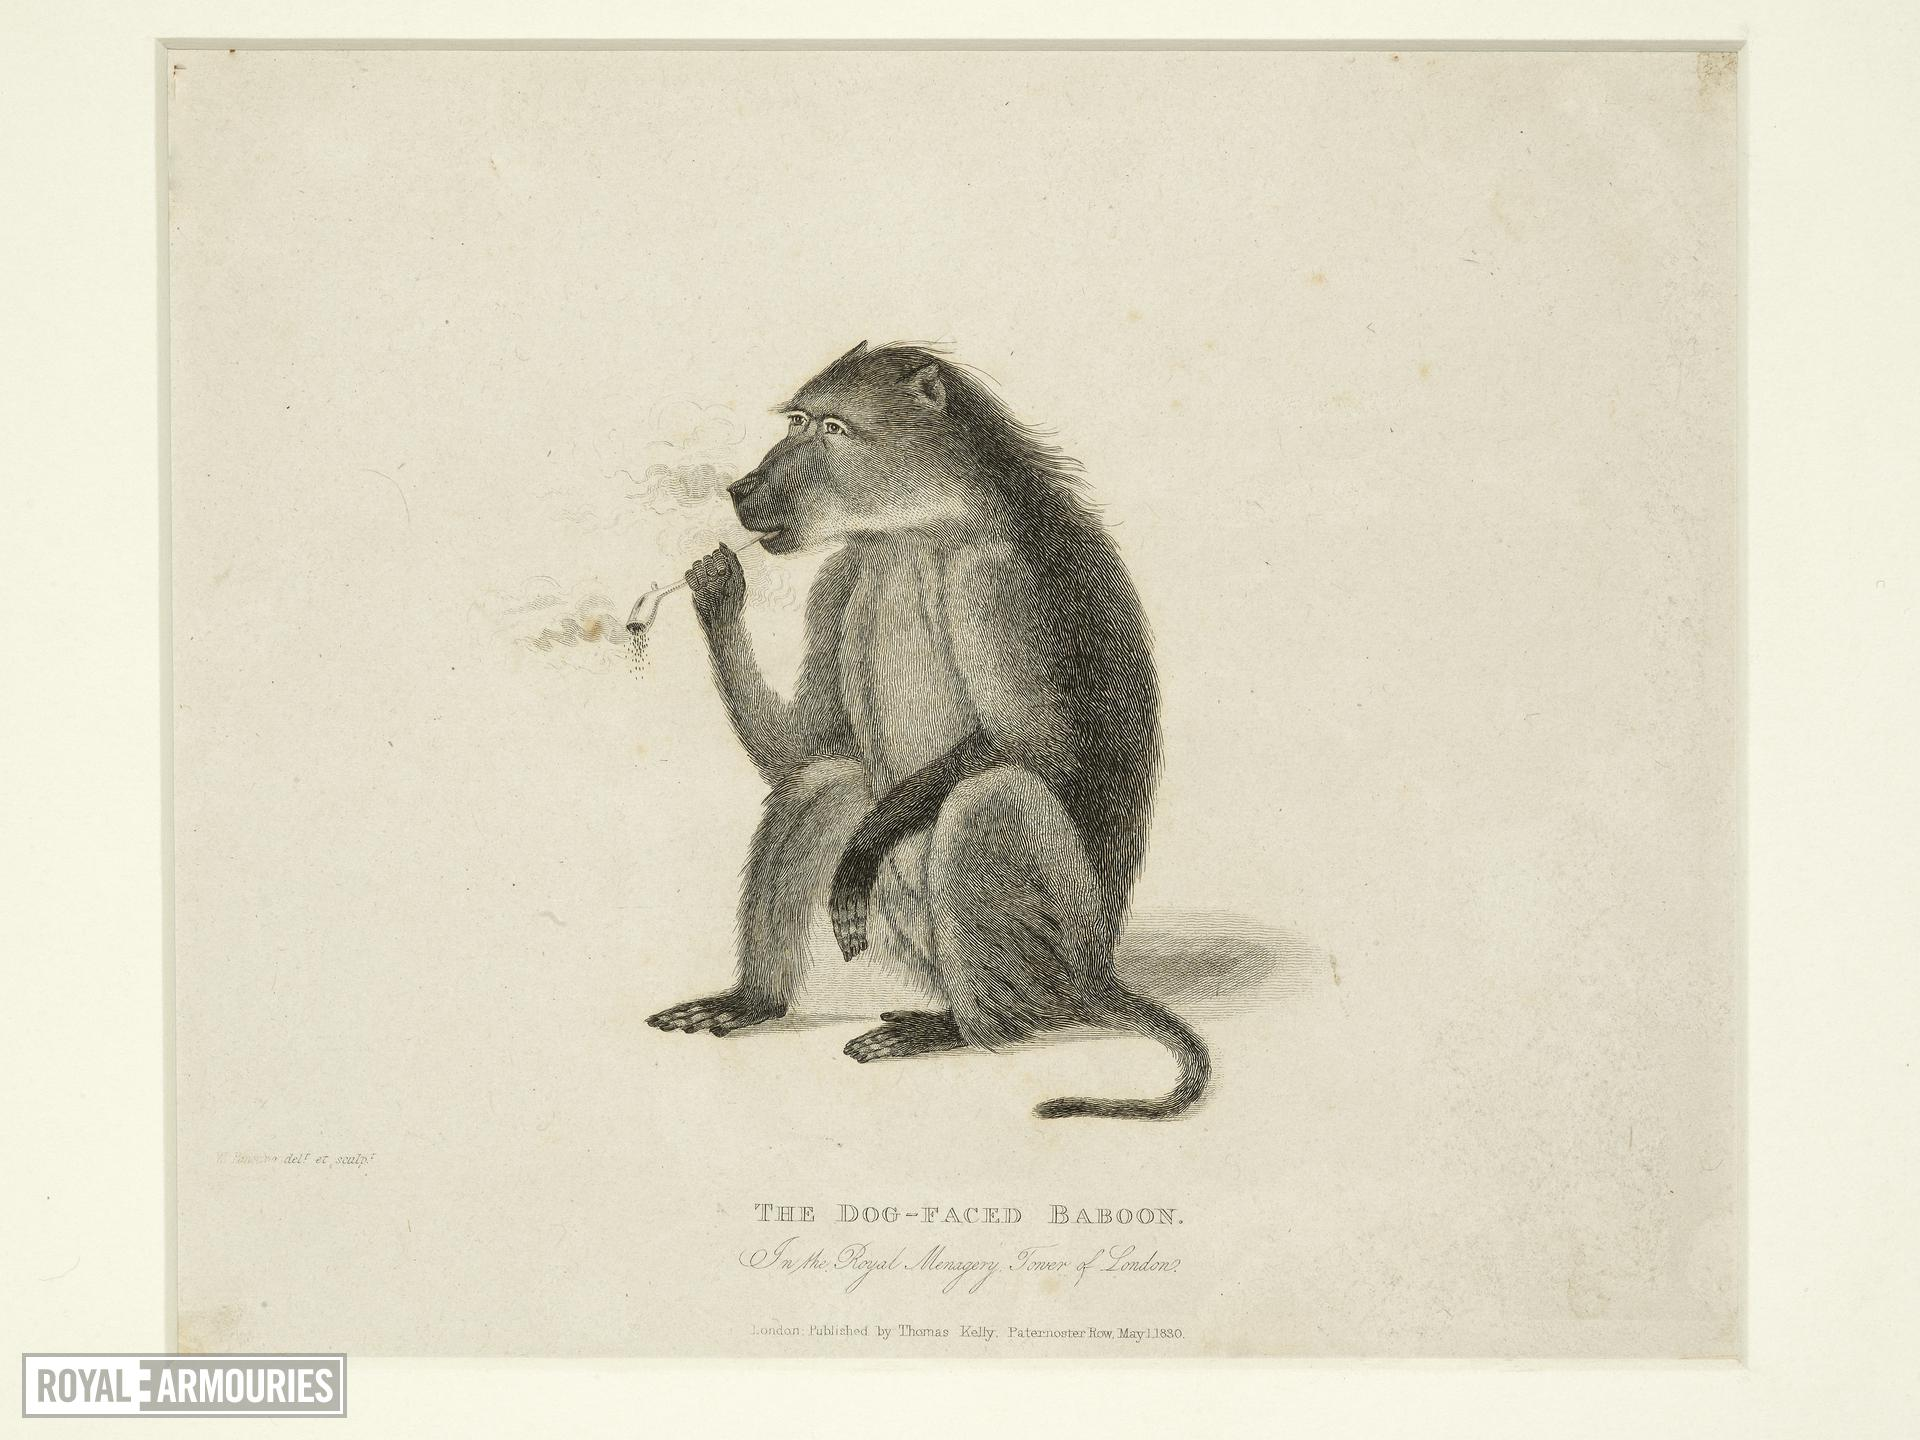 Print Entitled 'The Dog-Faced Baboon in the Royal Menagery, Tower of London', dated 1 May, 1830.